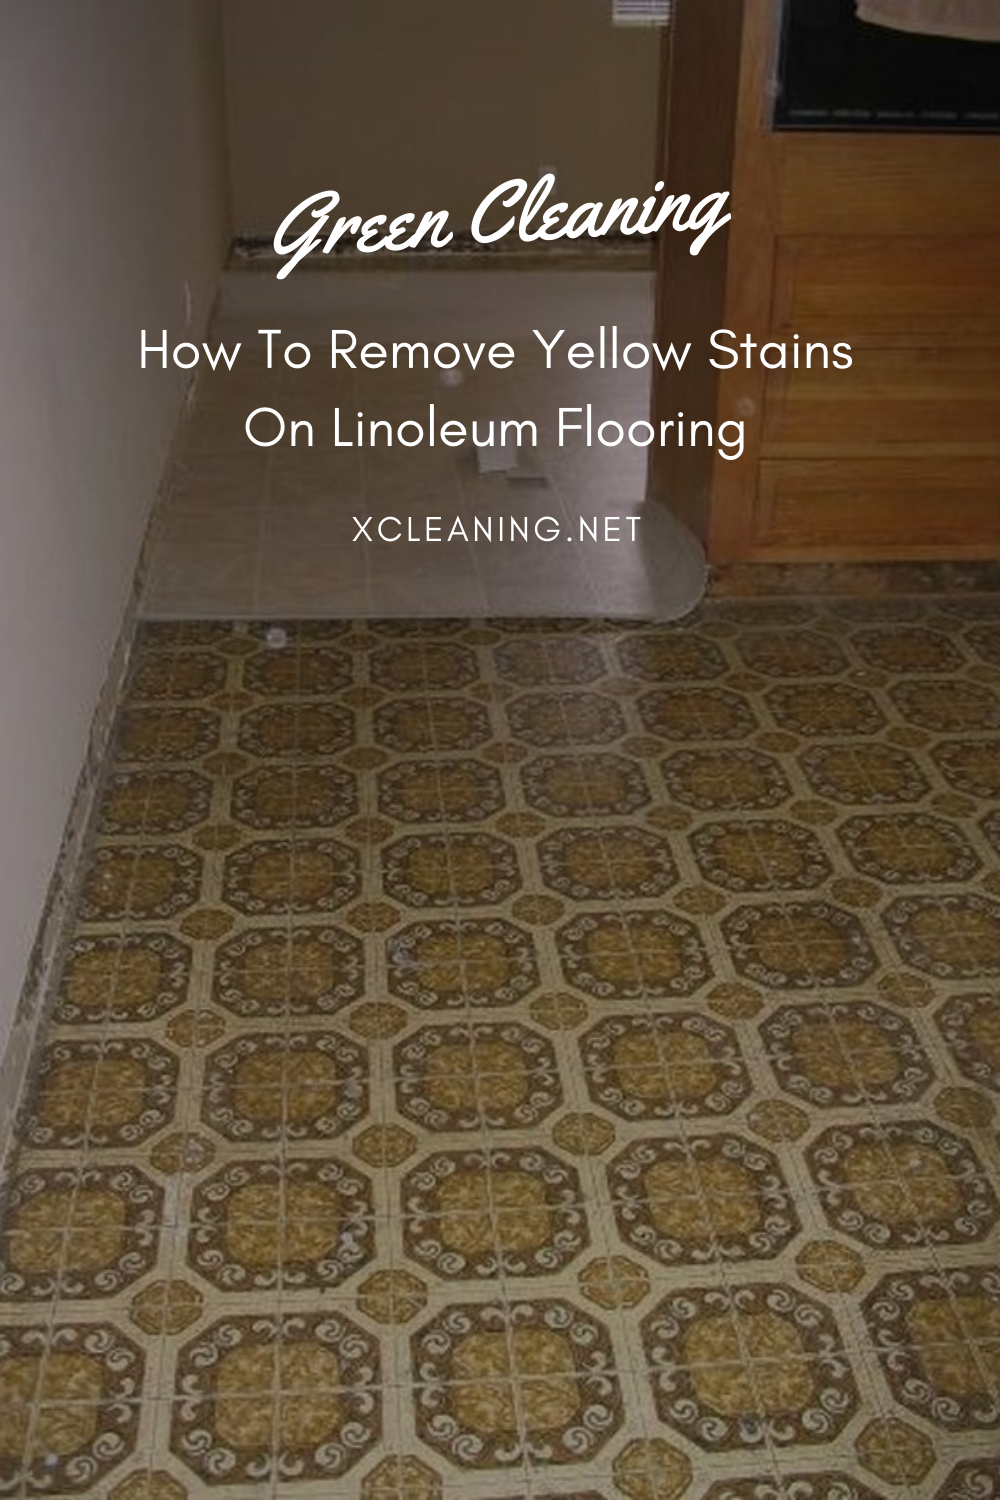 Green Cleaning How To Remove Yellow Stains On Linoleum Flooring ...